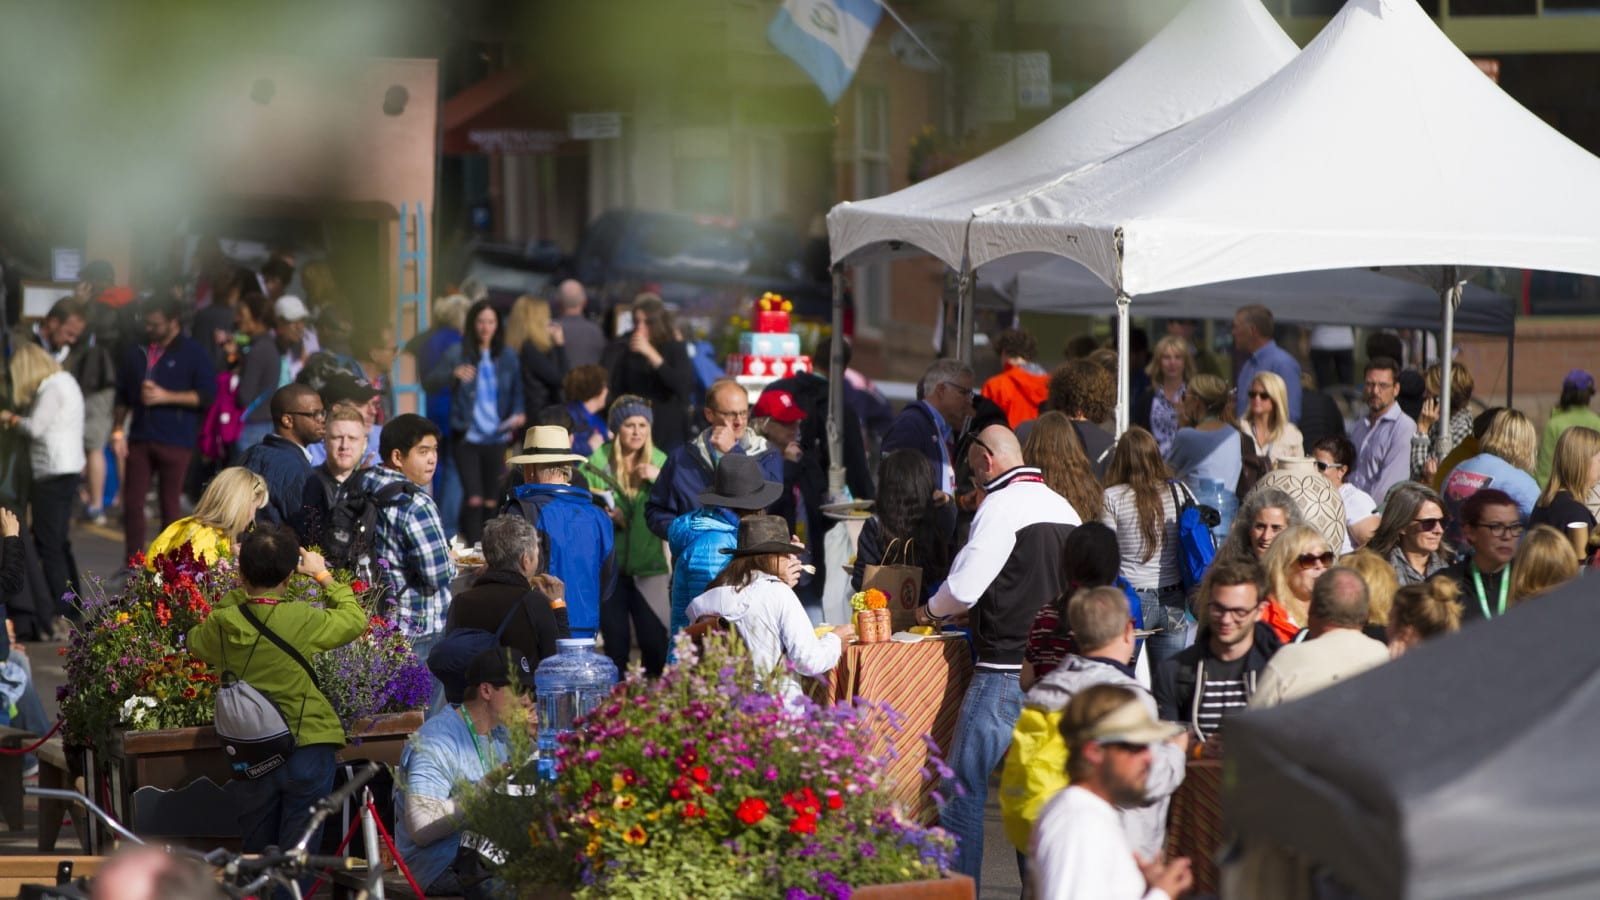 Large Crowd Of People At A Street Festival Stock Photo